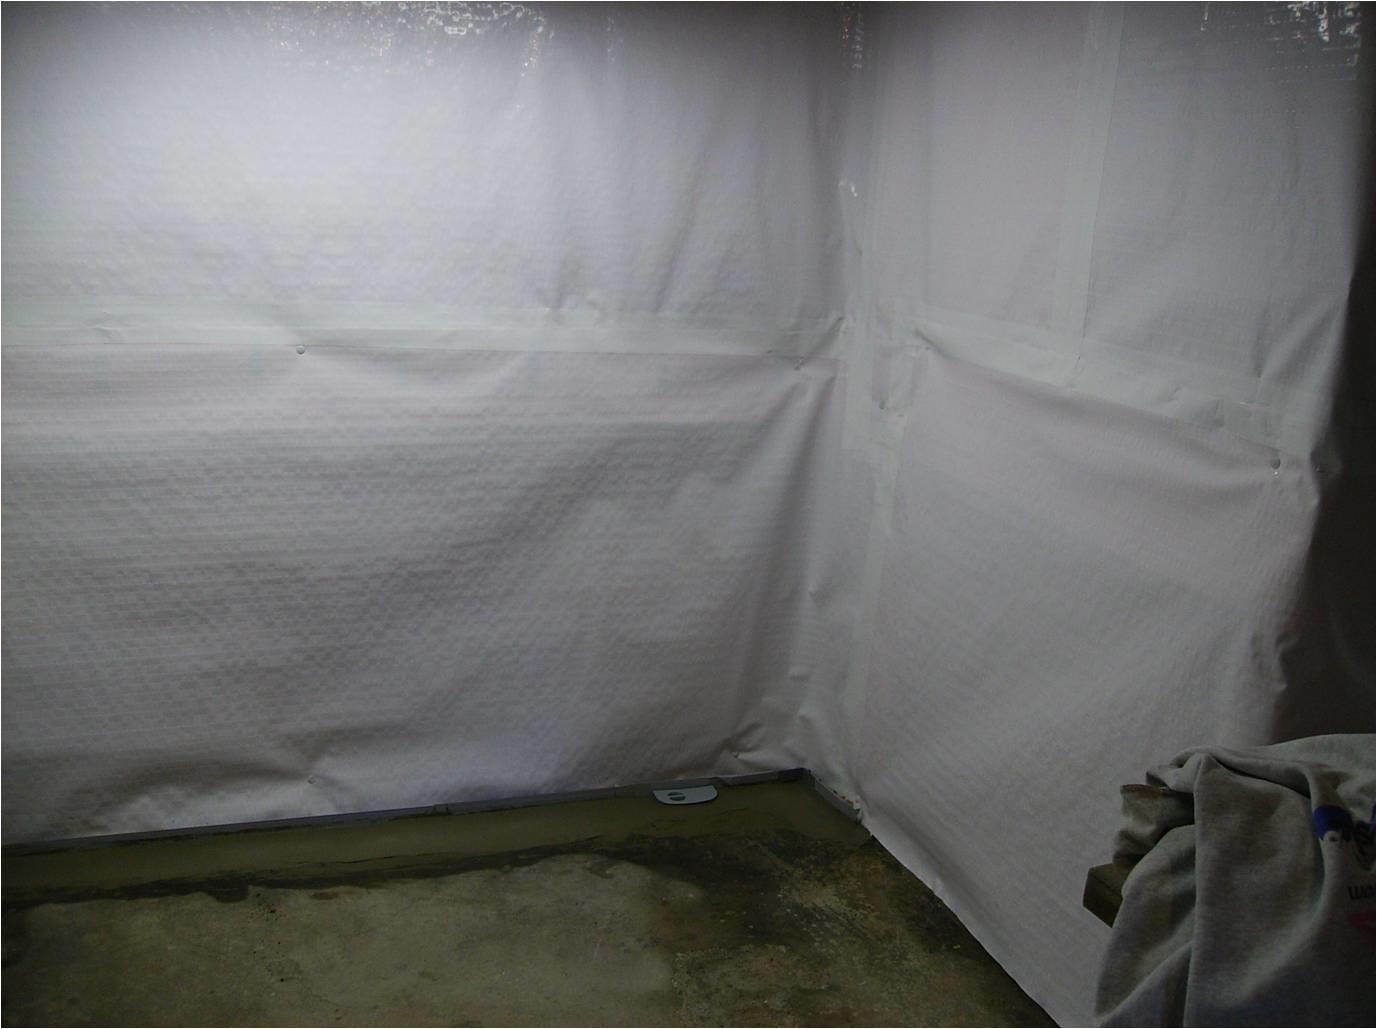 Cleanspace and Waterguard Installation - After Photo